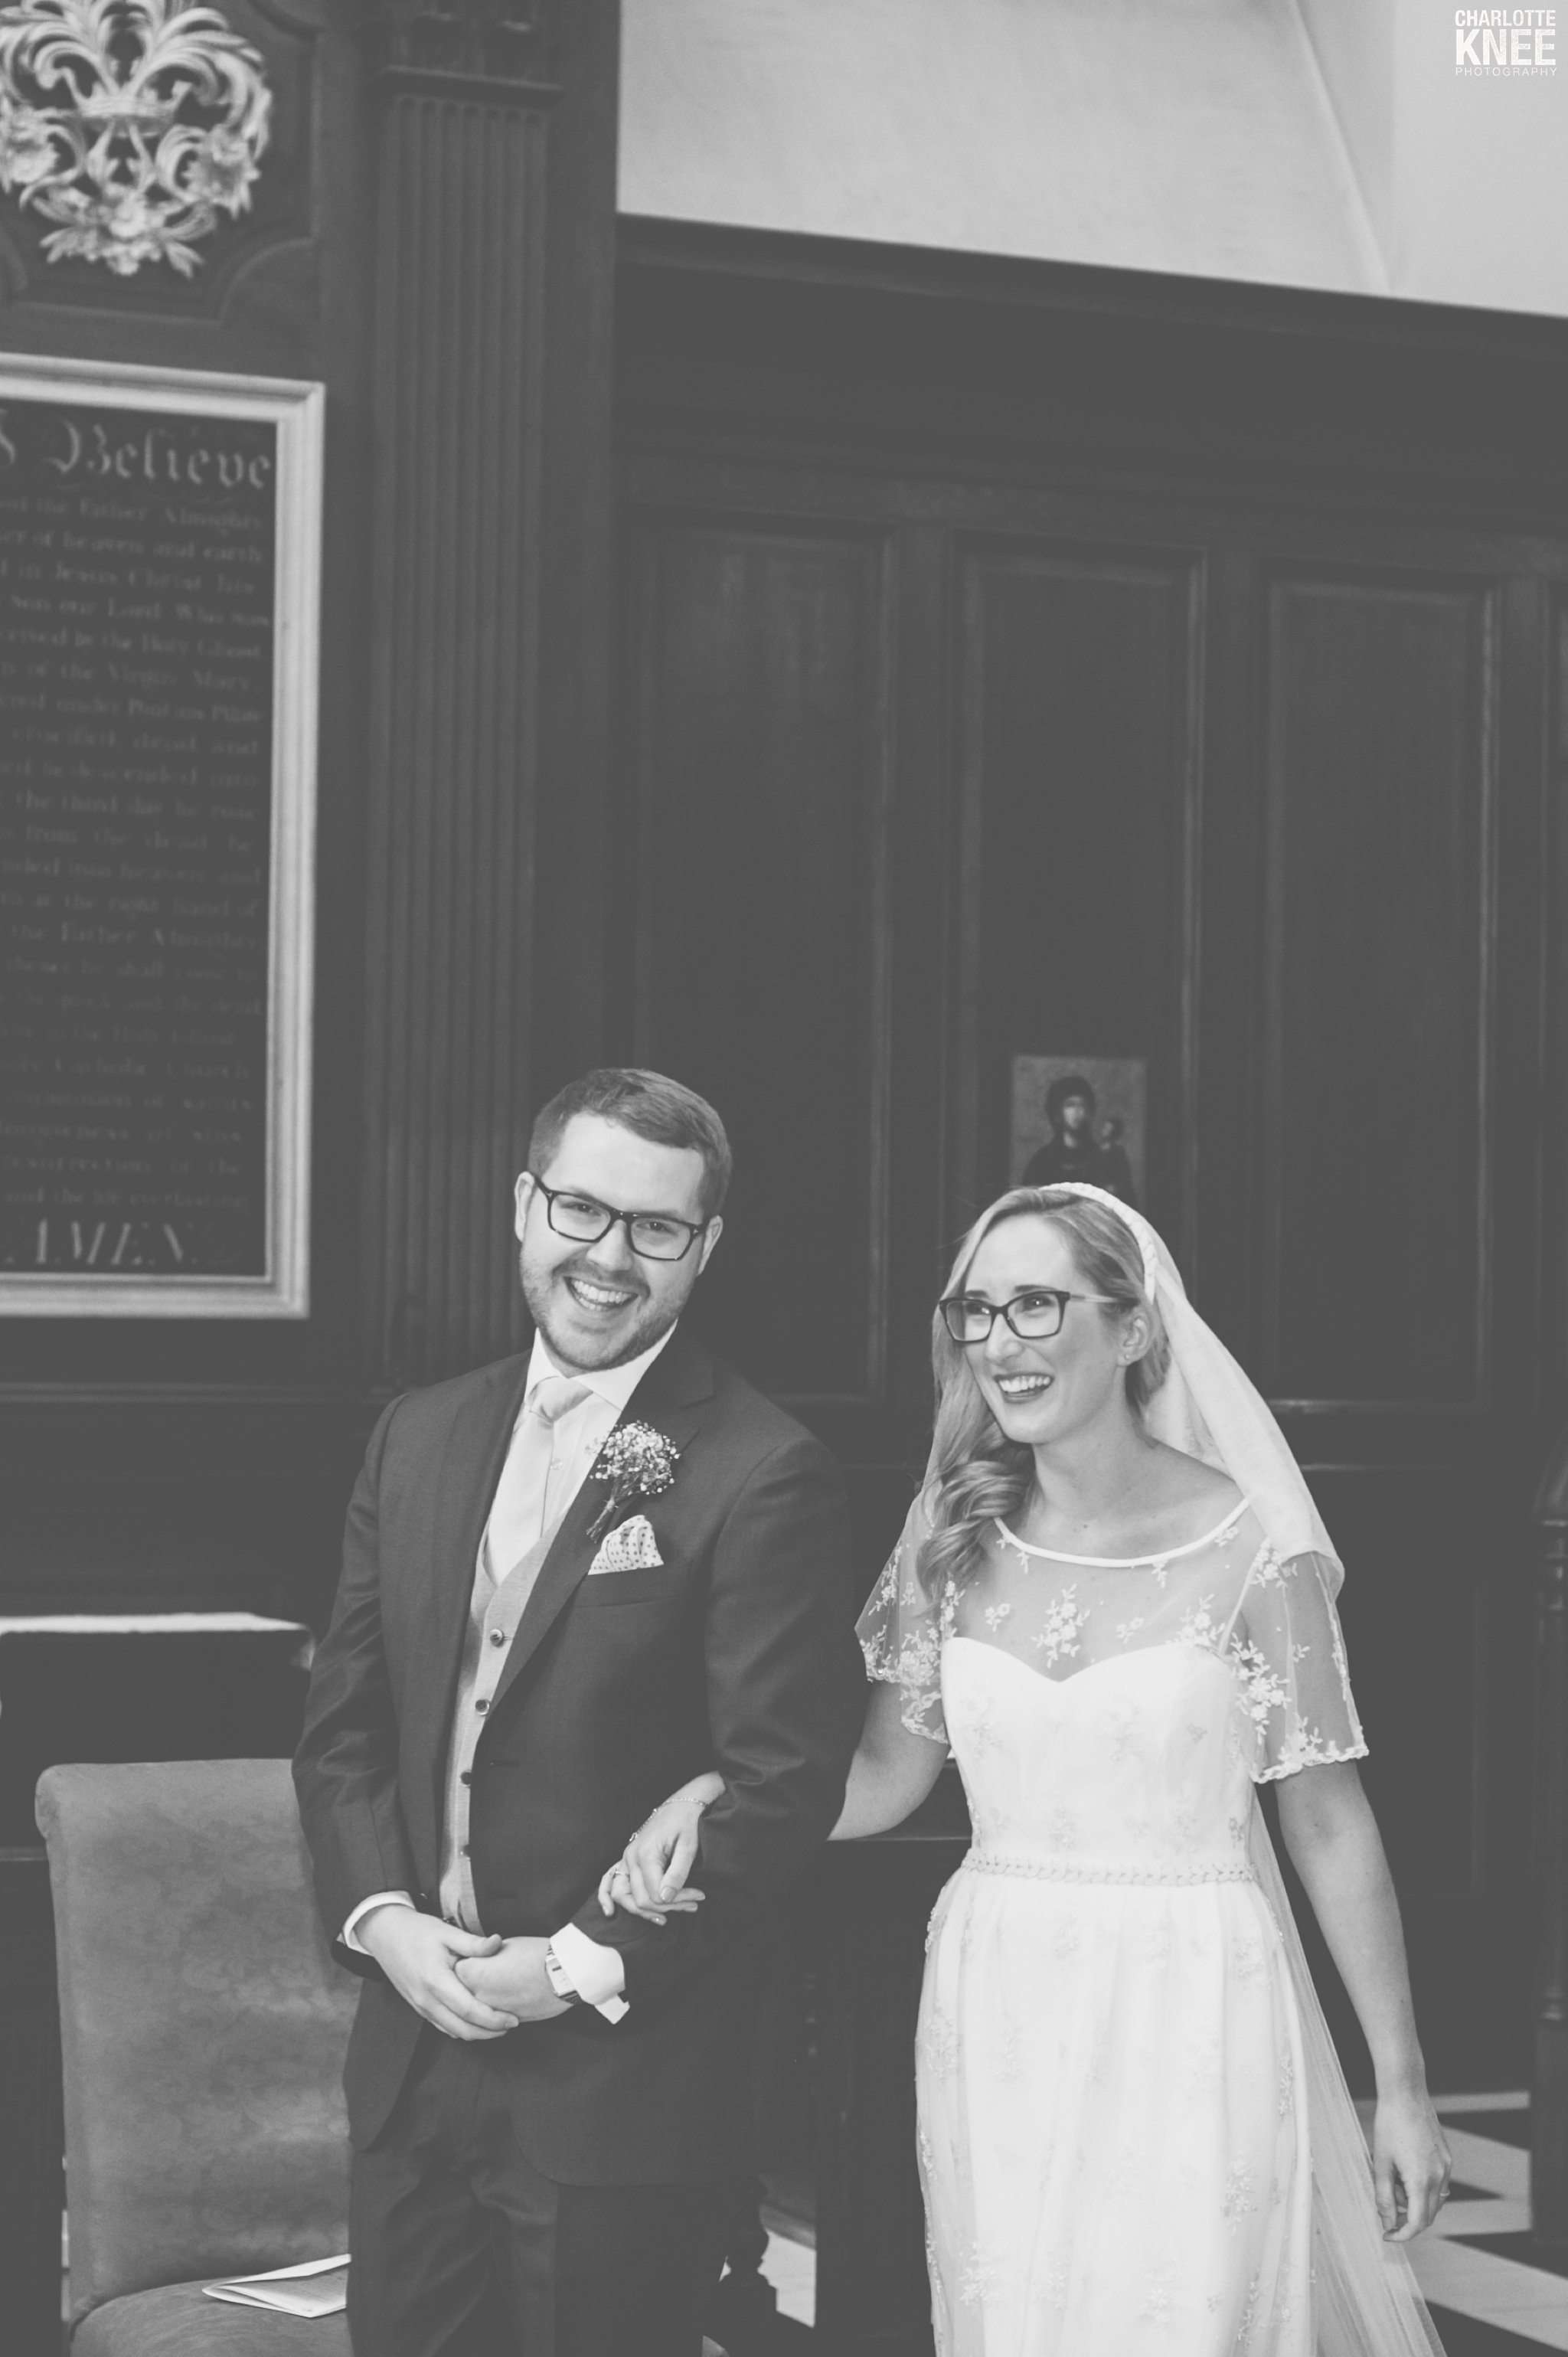 Saddlers Hall London Wedding Photography Copyright Charlotte Knee Photography_0097.jpg